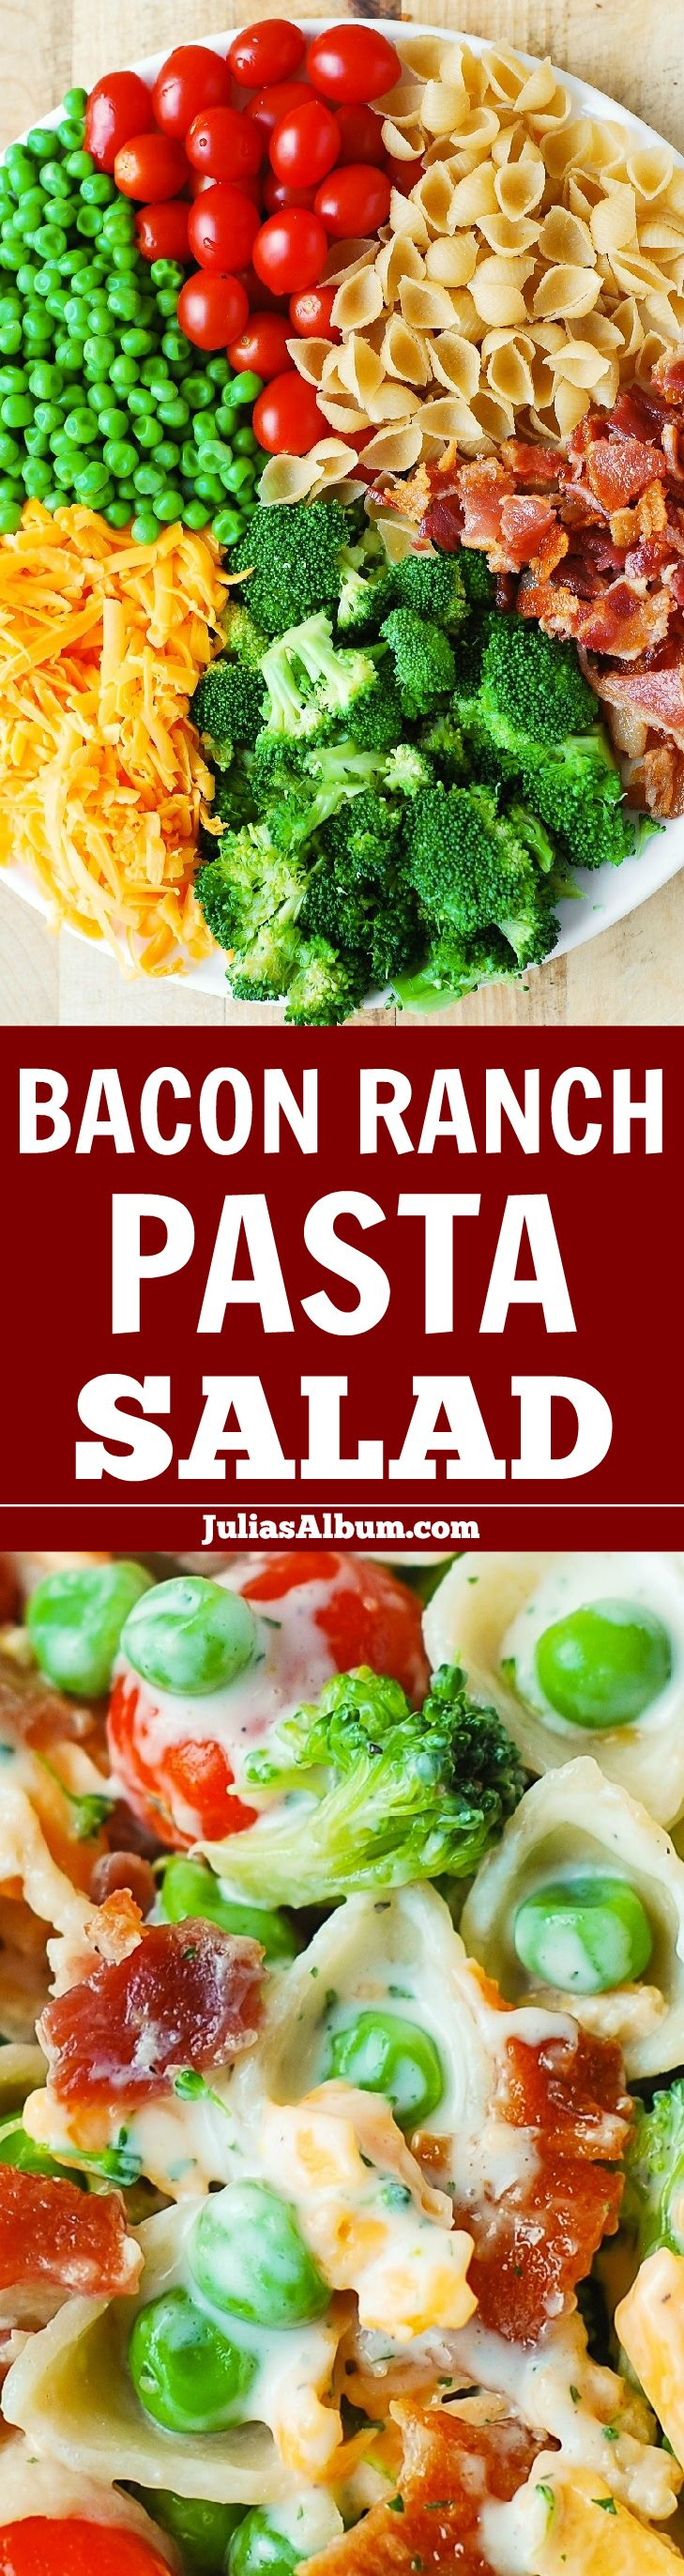 Bacon Ranch Pasta Salad – LOADED with veggies (broccoli, cherry tomatoes, sweet peas), sharp Cheddar cheese, pasta shells, and